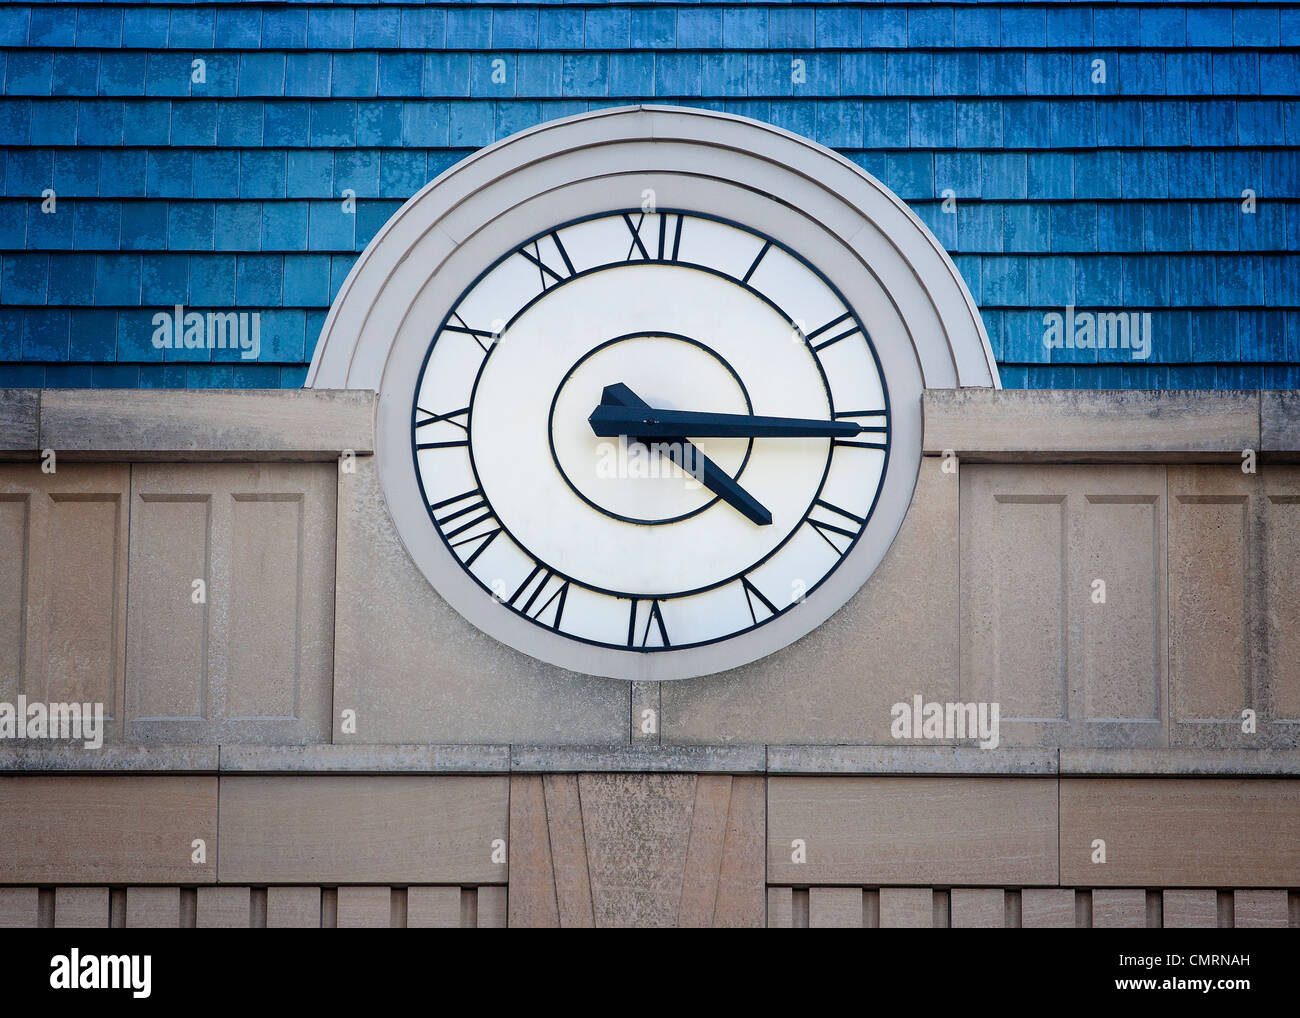 Big outside clock with Roman Numerals on stone building with blue roof - Stock Image